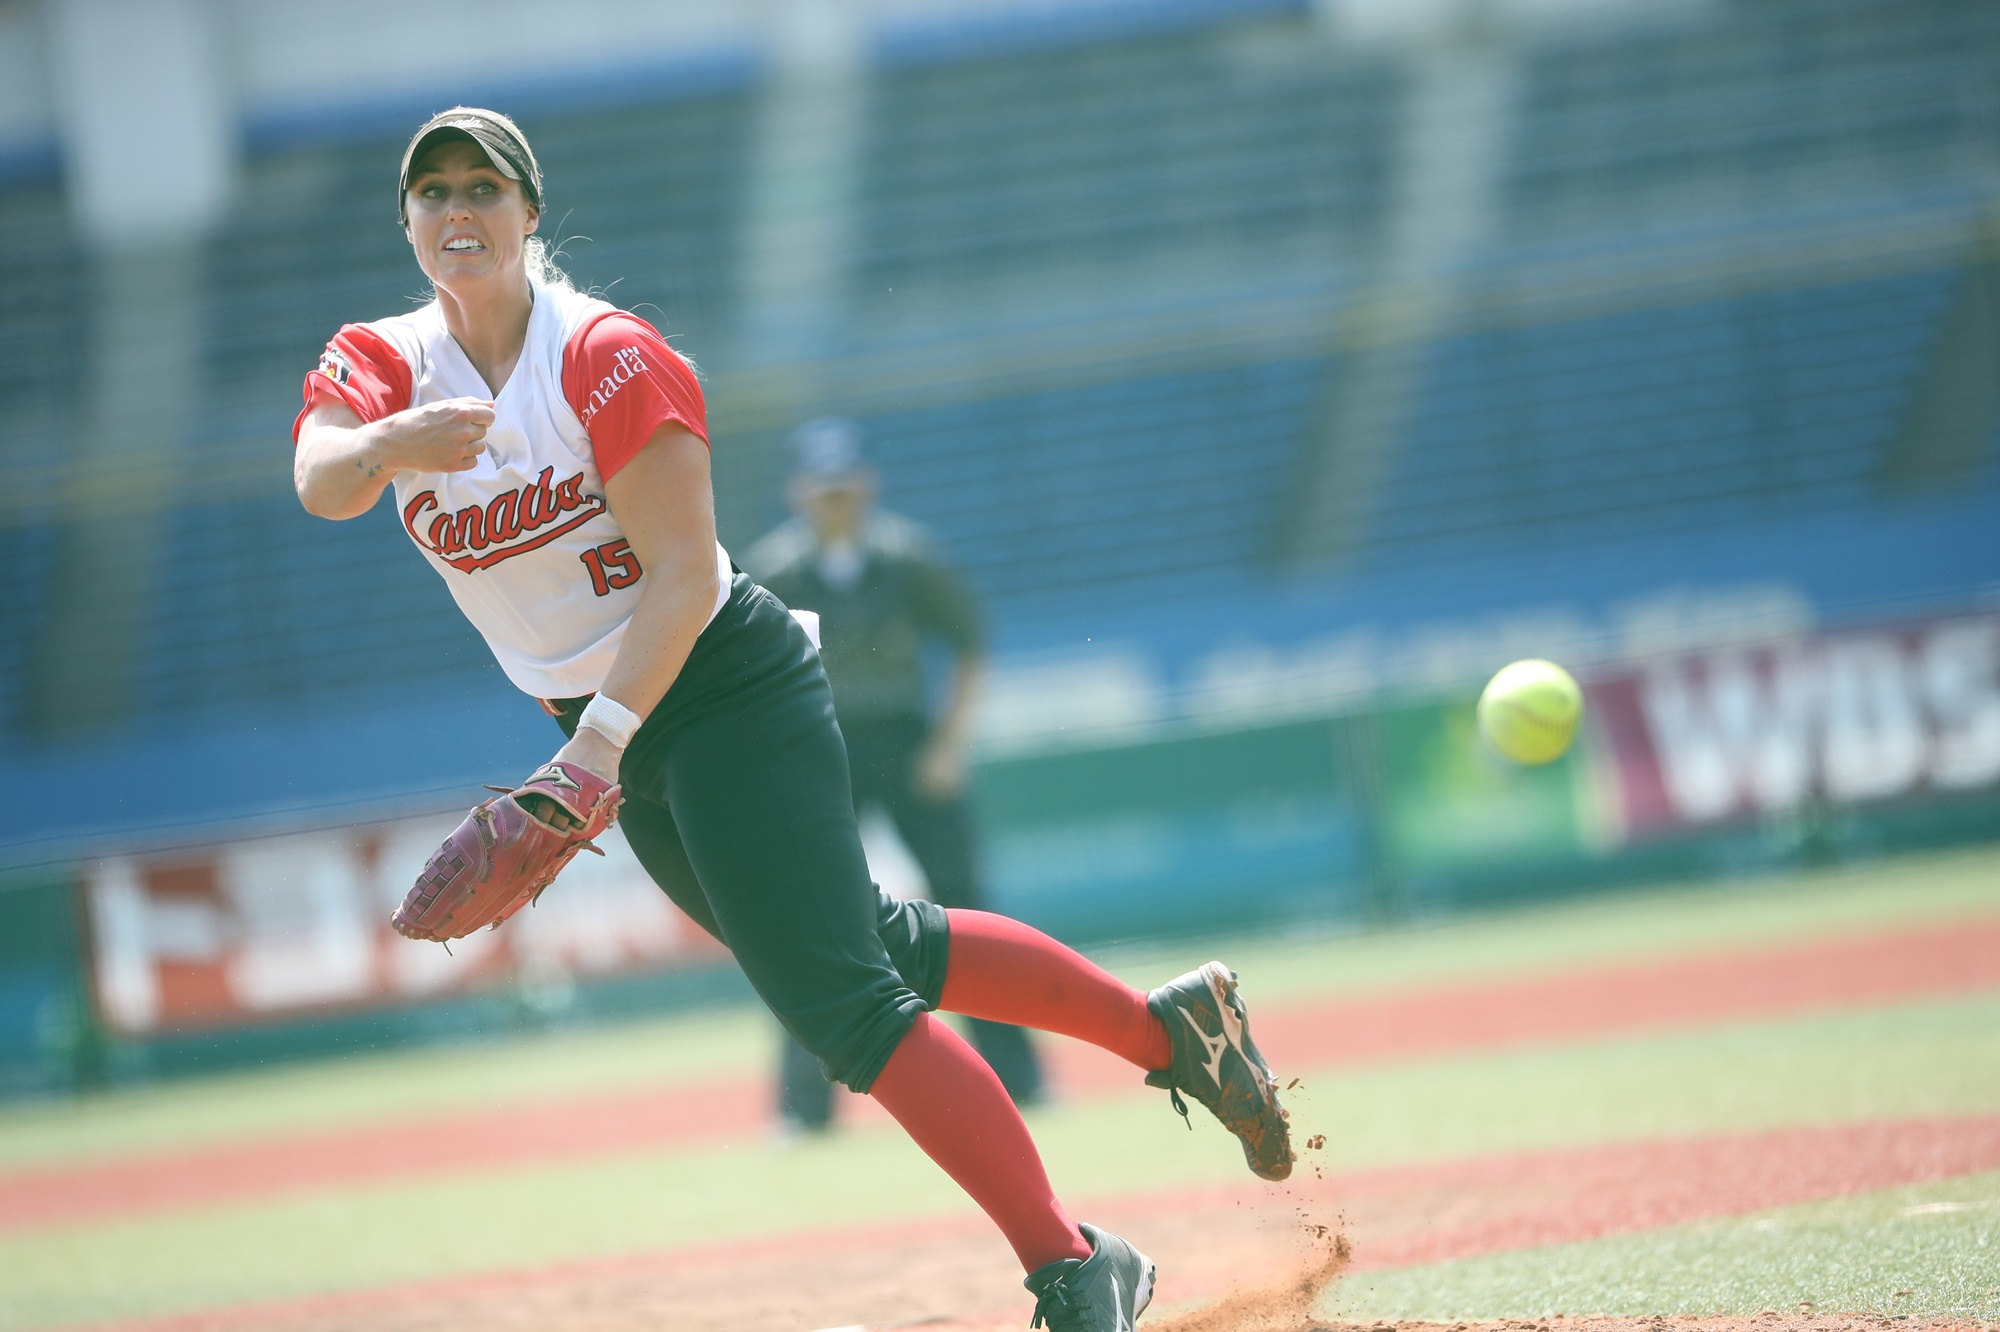 Danielle Lawrie picked the win for Canada